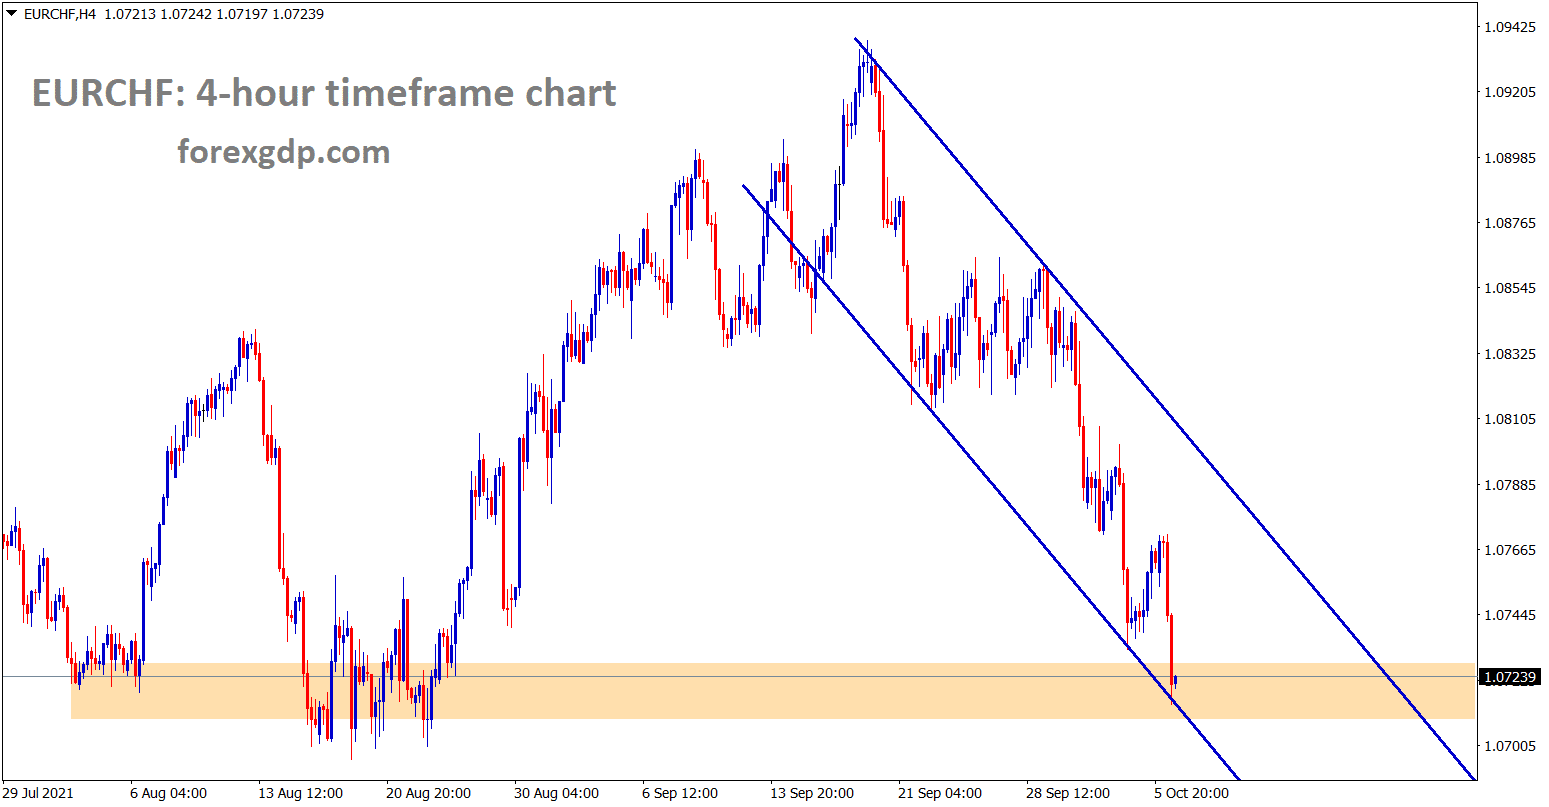 EURCHF is standing at the lower low level of a descending channel and the horizontal support area